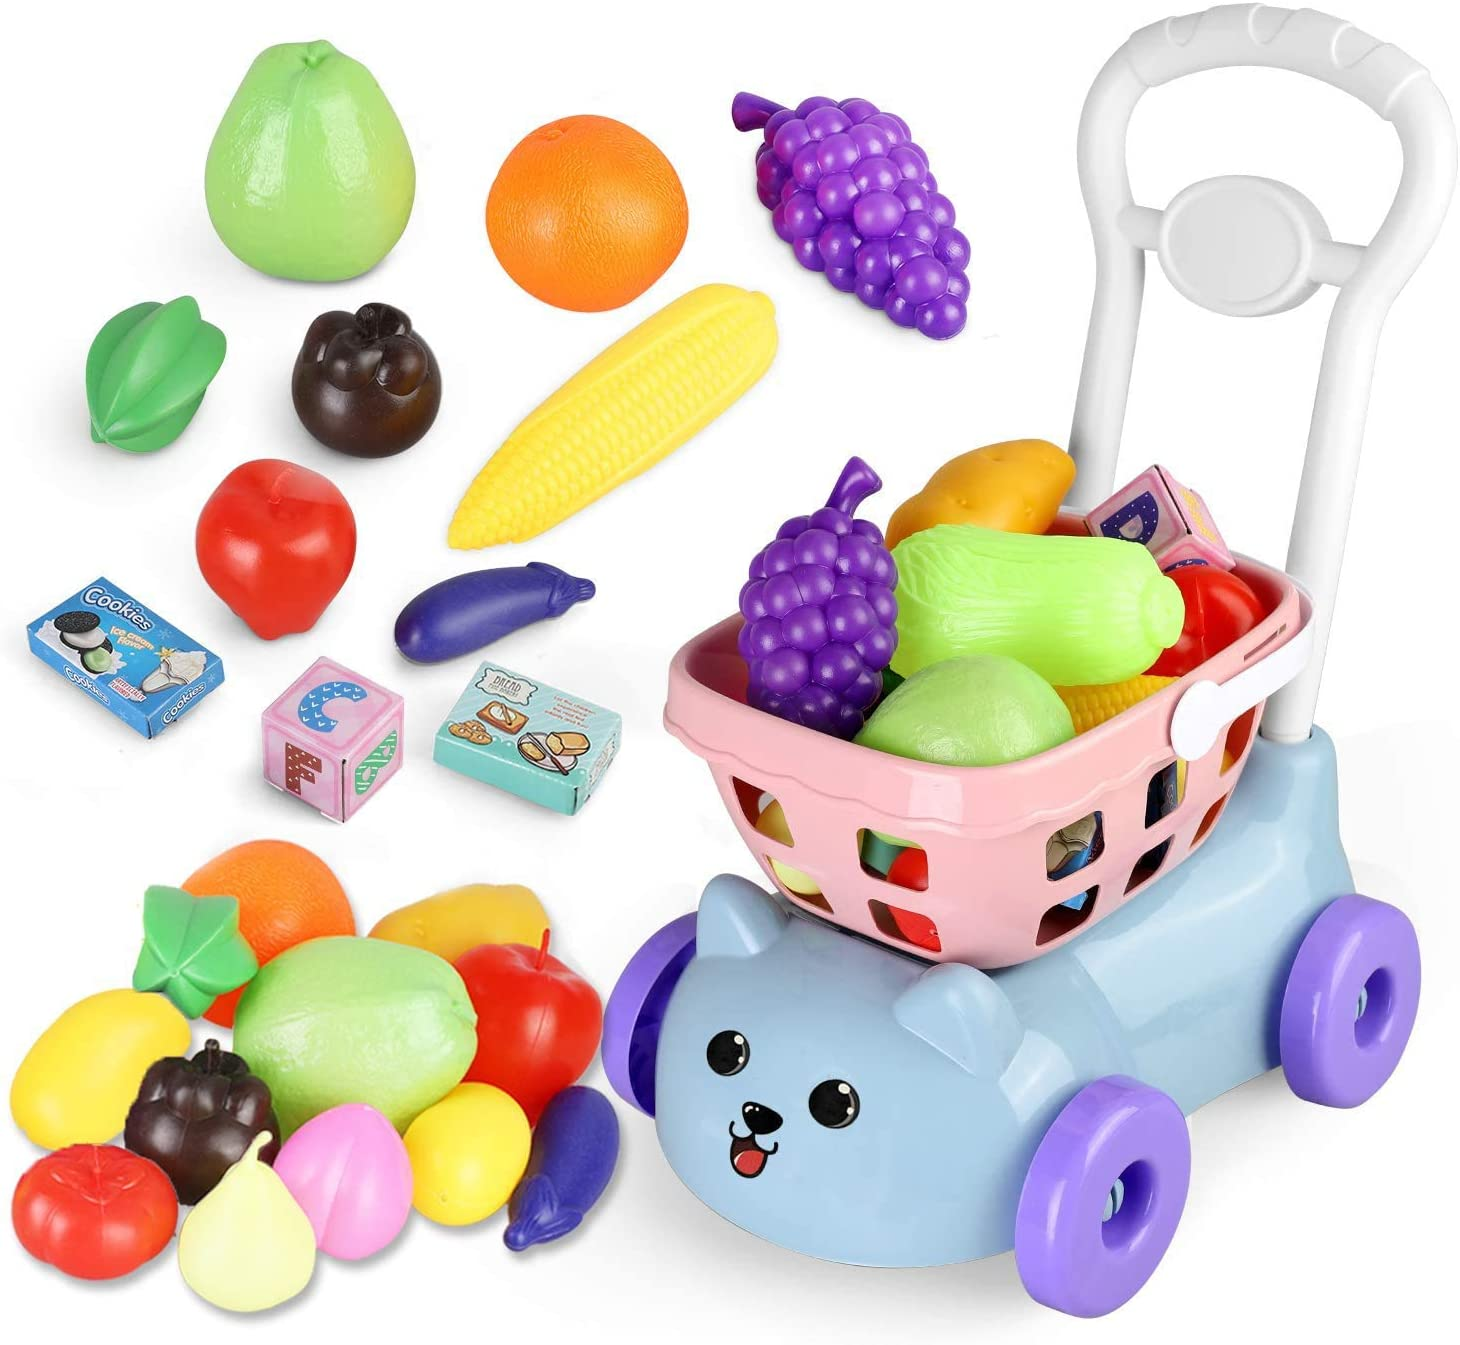 BeebeeRun Toys Shopping Cart Kids Grocery Kitchen Pretend Play Food Accessories for Children Girls Boys 20 Pieces